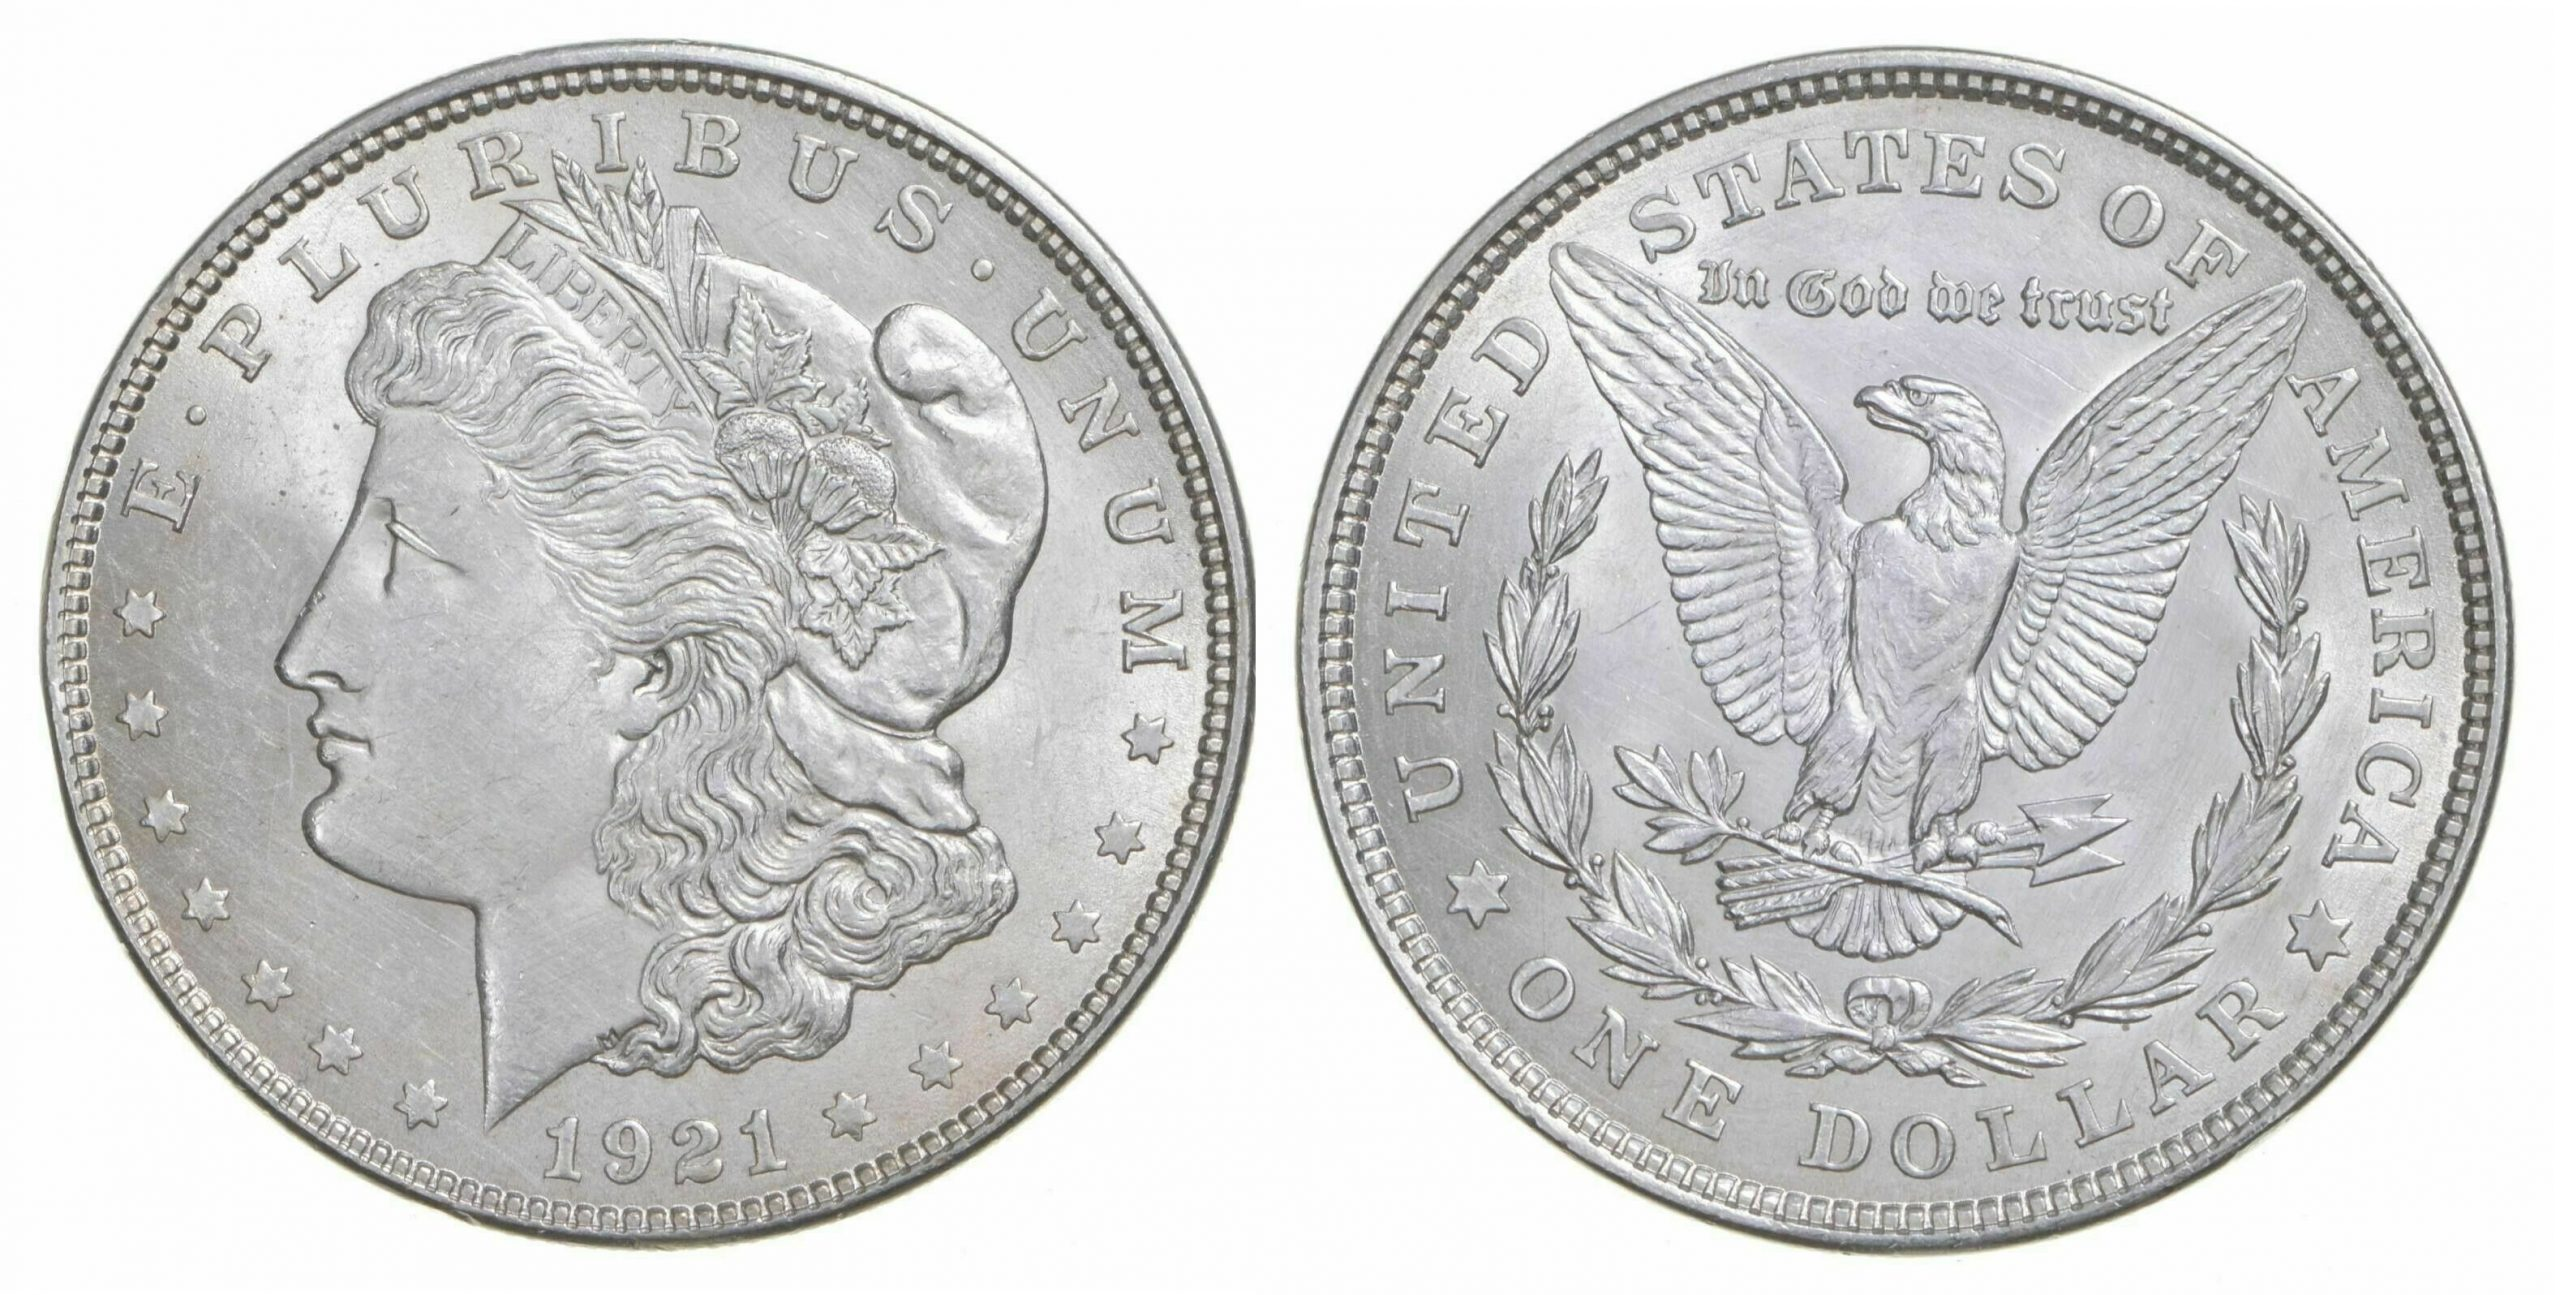 1921_Morgan_Silver_Dollars_AU-300x152-1 - COIN SHOP COIN DEALER HUDSON COINS